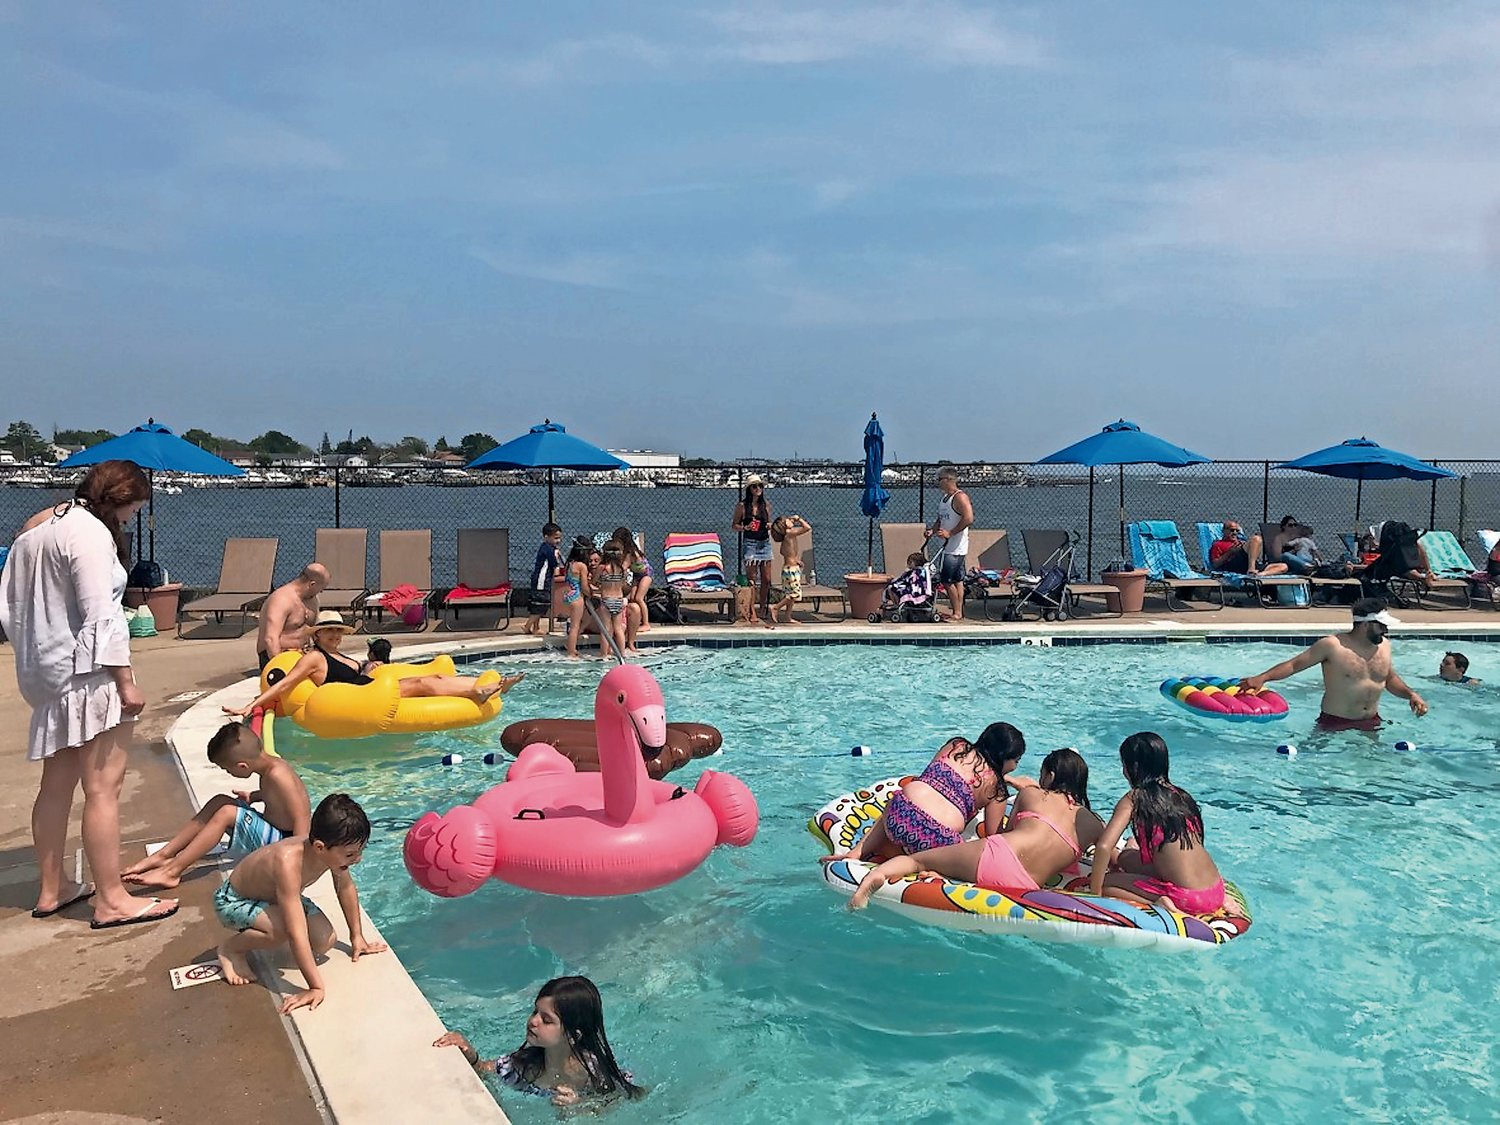 Local families have enjoyed MECA's amenities for the past 60 years, and now, after major renovations and an update to the events calendar, the fun will continue.